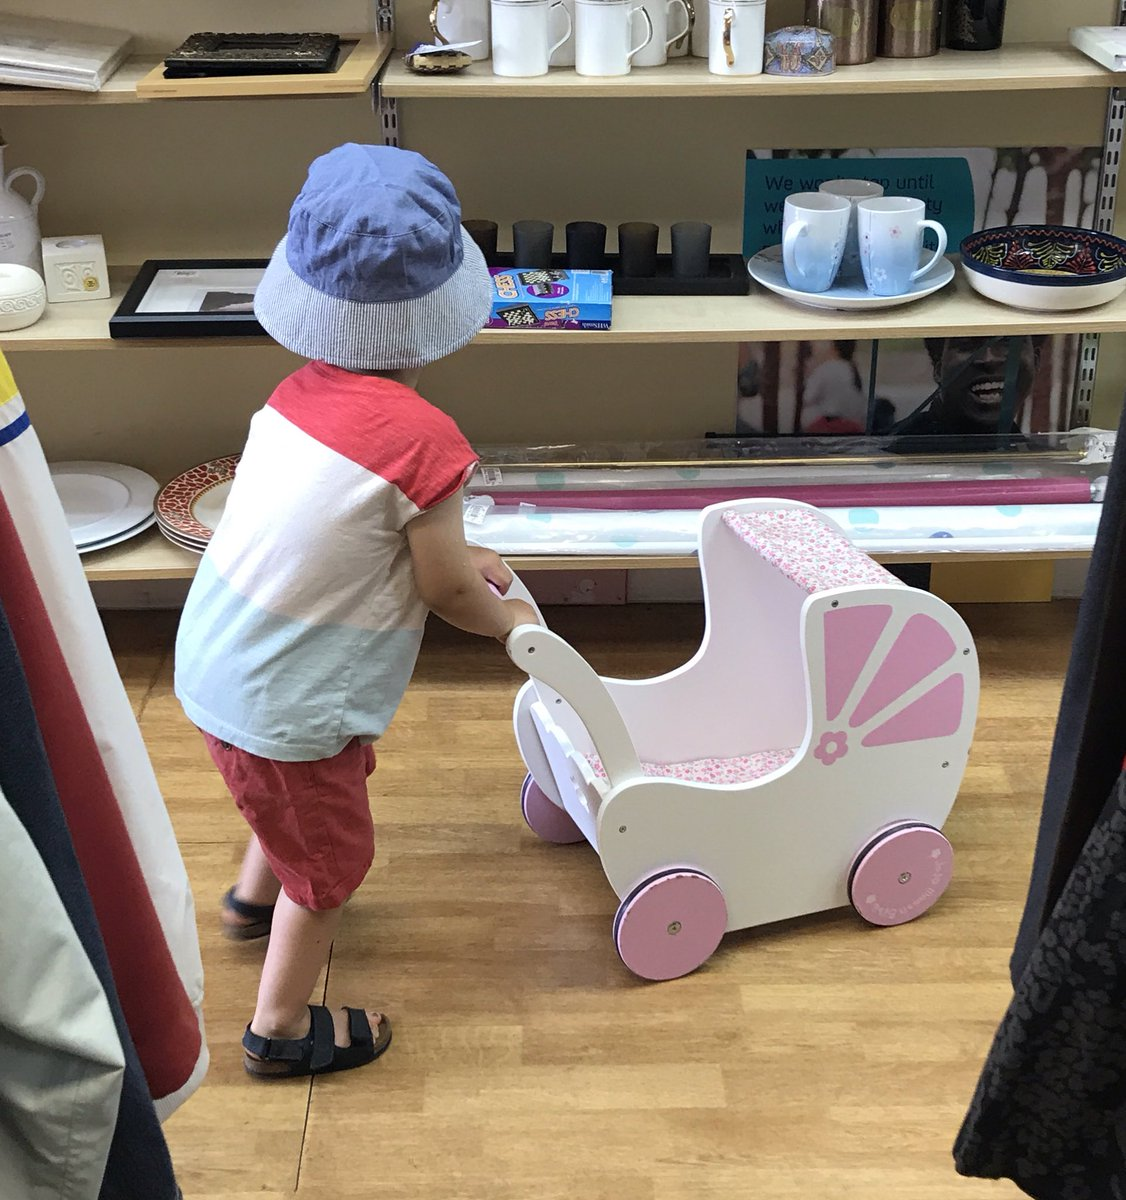 @LetToysBeToys my boy's choice of entertainment as I dropped some bits at the charity shop today ❤️